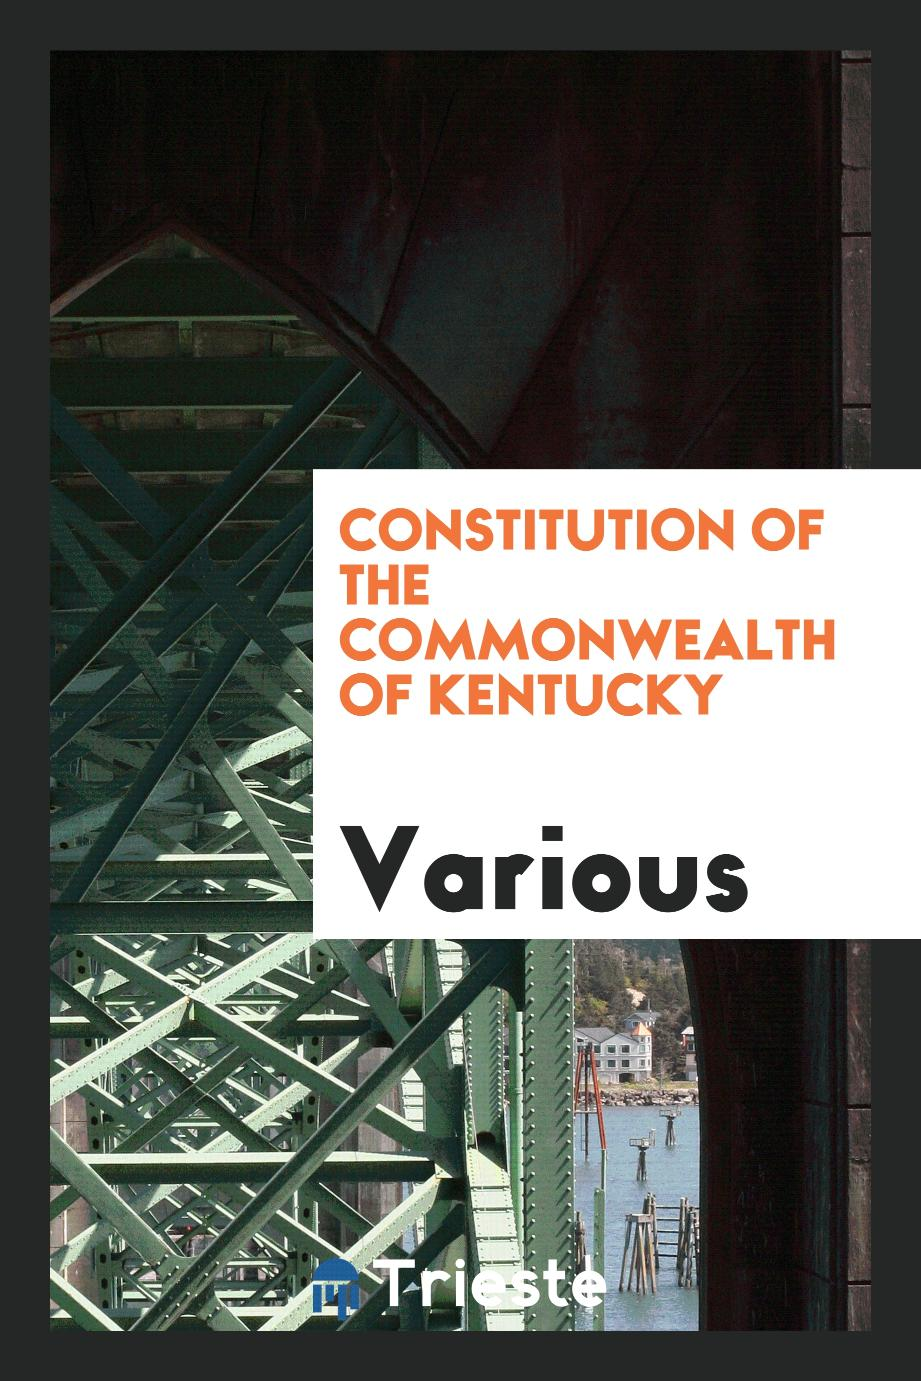 Constitution of the Commonwealth of Kentucky